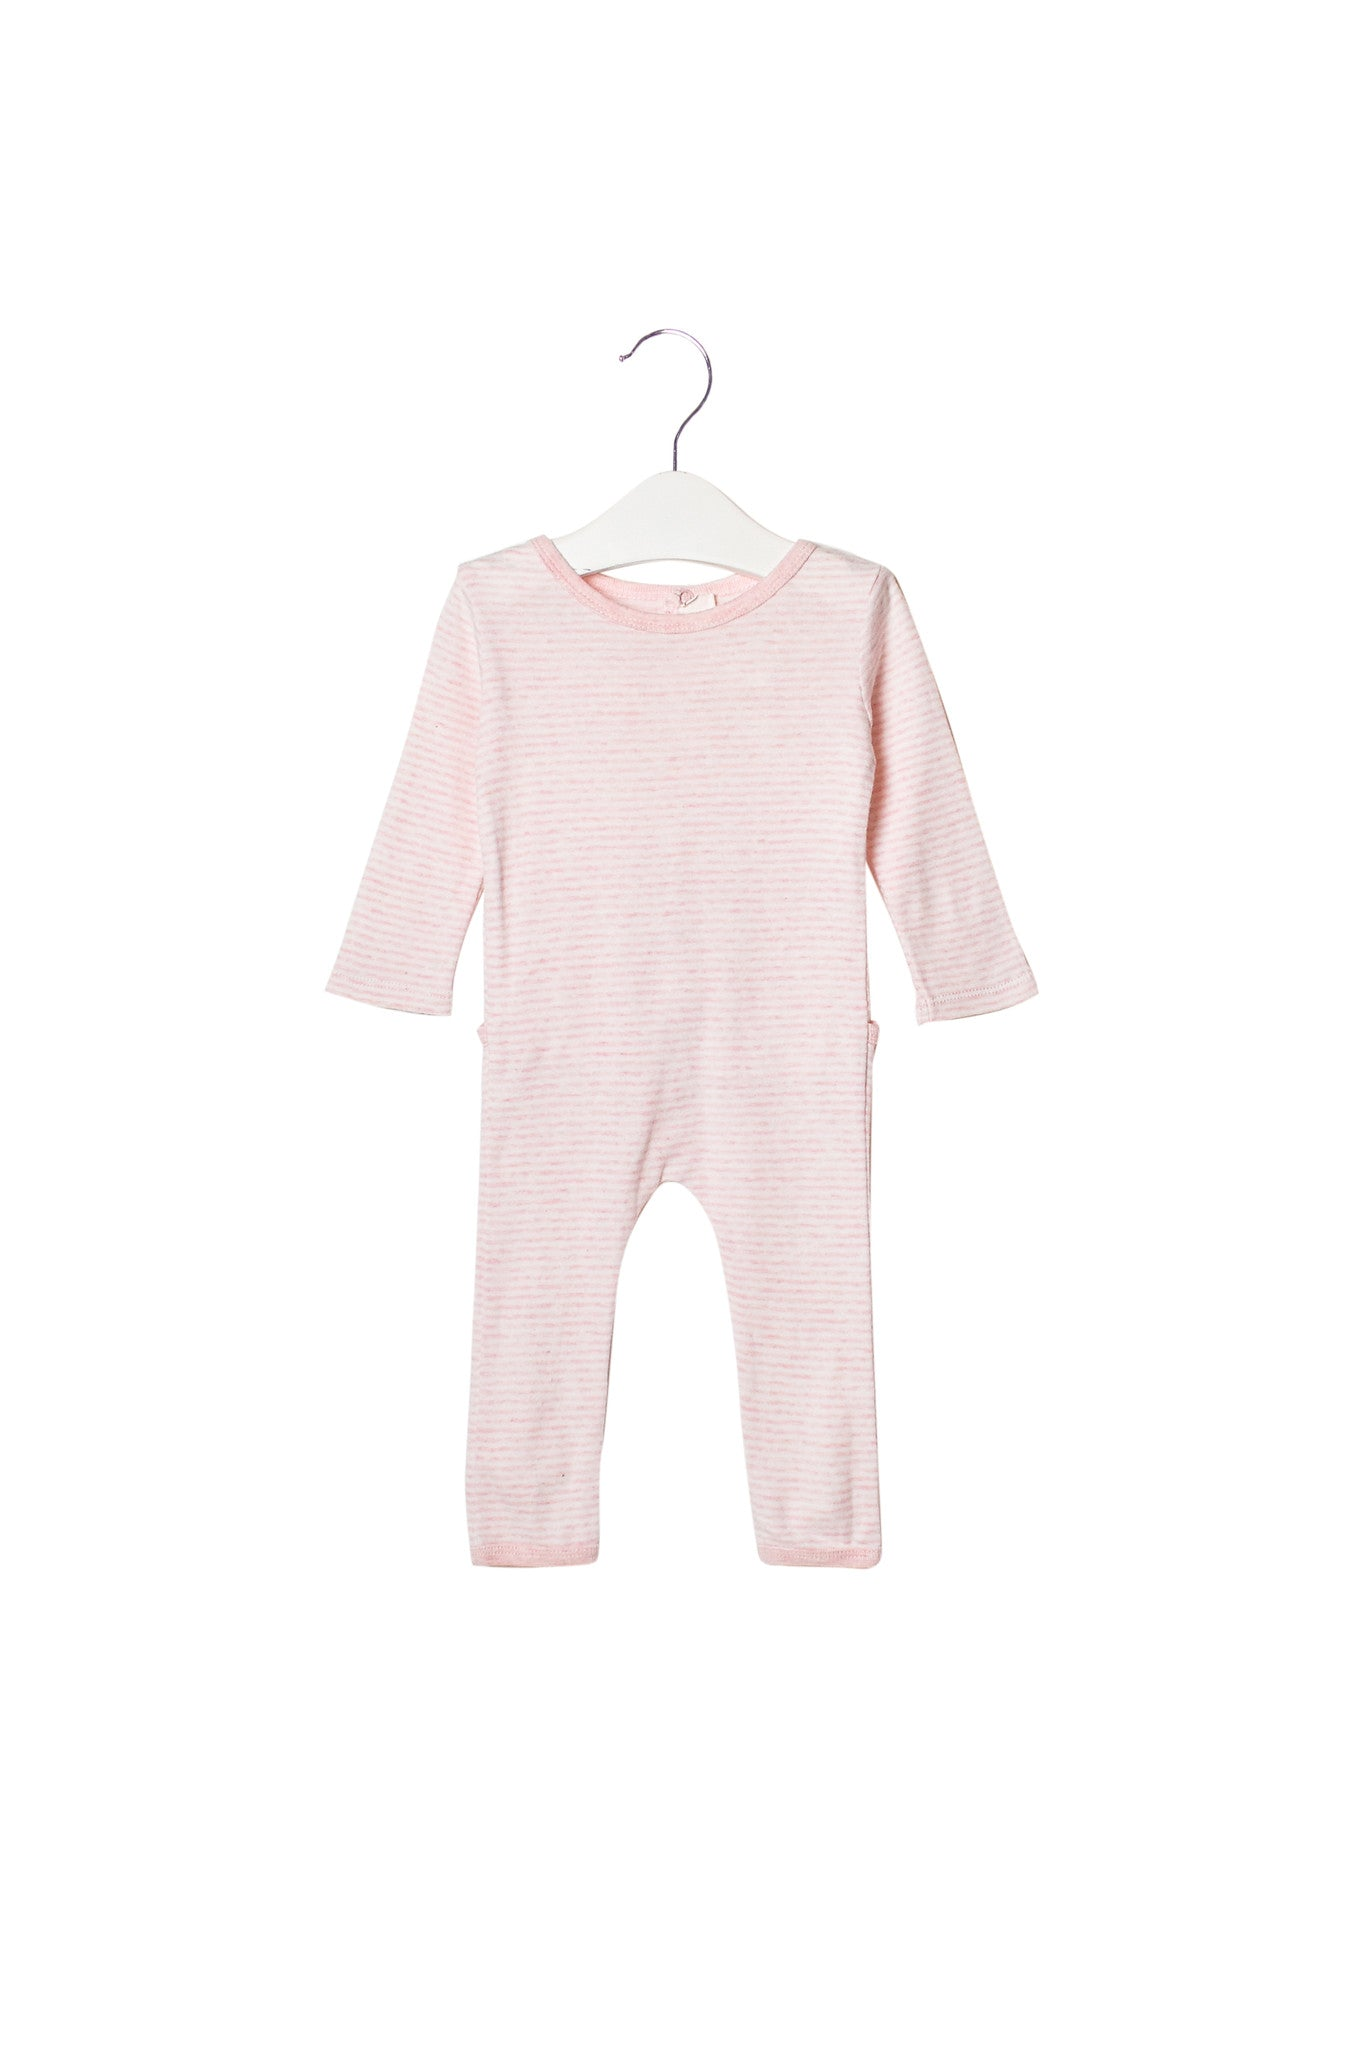 10003542 Seed Baby~Jumpsuit 3-6M at Retykle